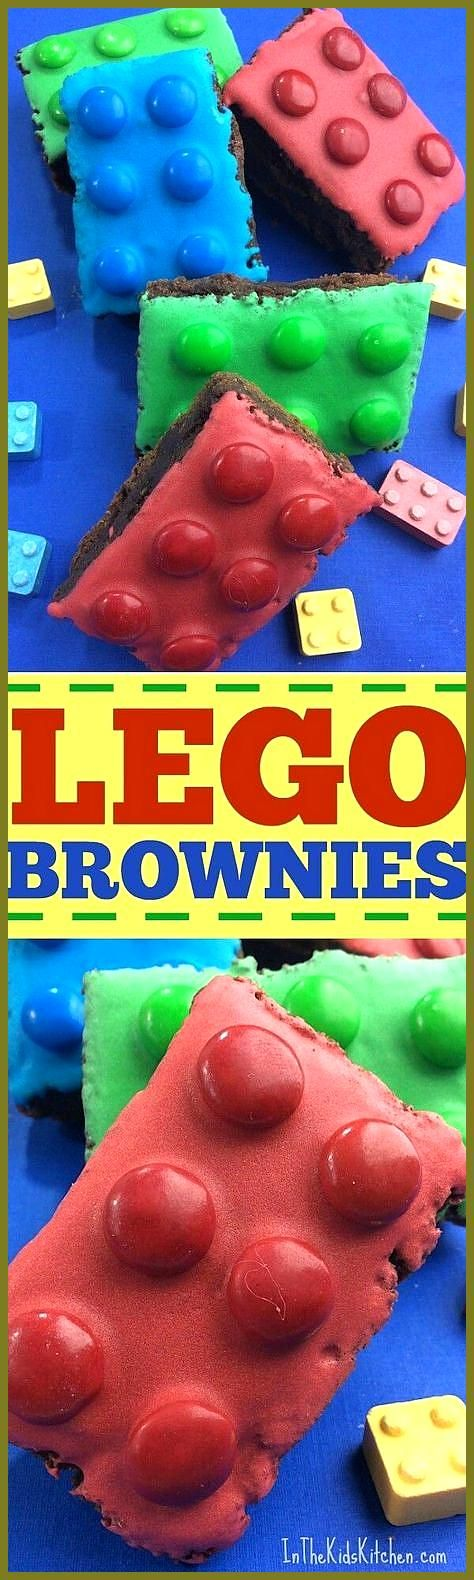 Perfect for a kids birthday party bake sales or to celebrate the new LEGO movies  these colorful LE